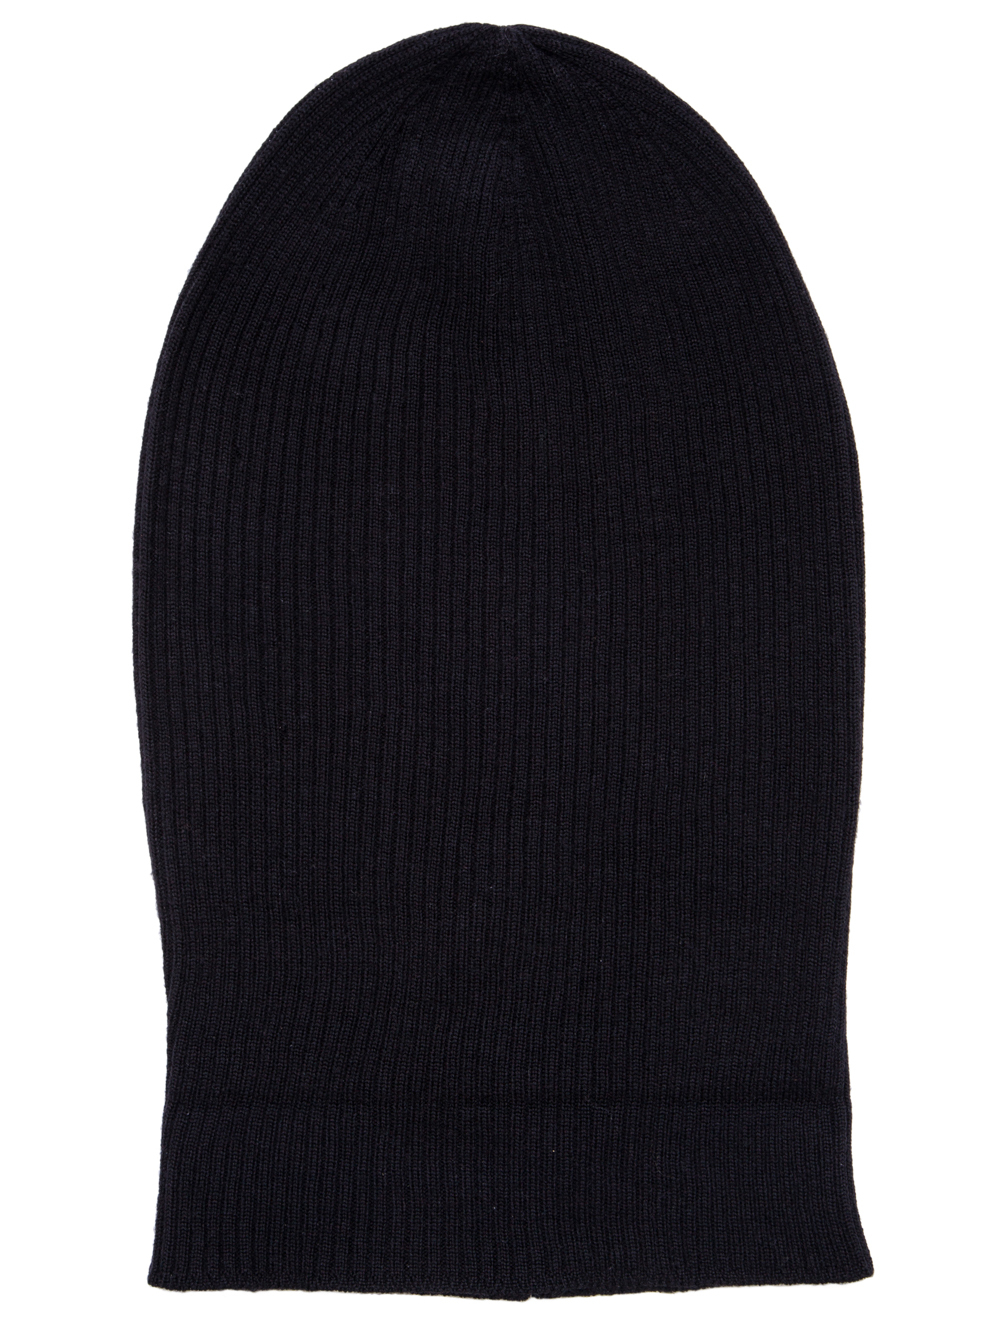 RICK OWENS SS19 BABEL MEDIUM HAT IN BLACK MERINO WOOL